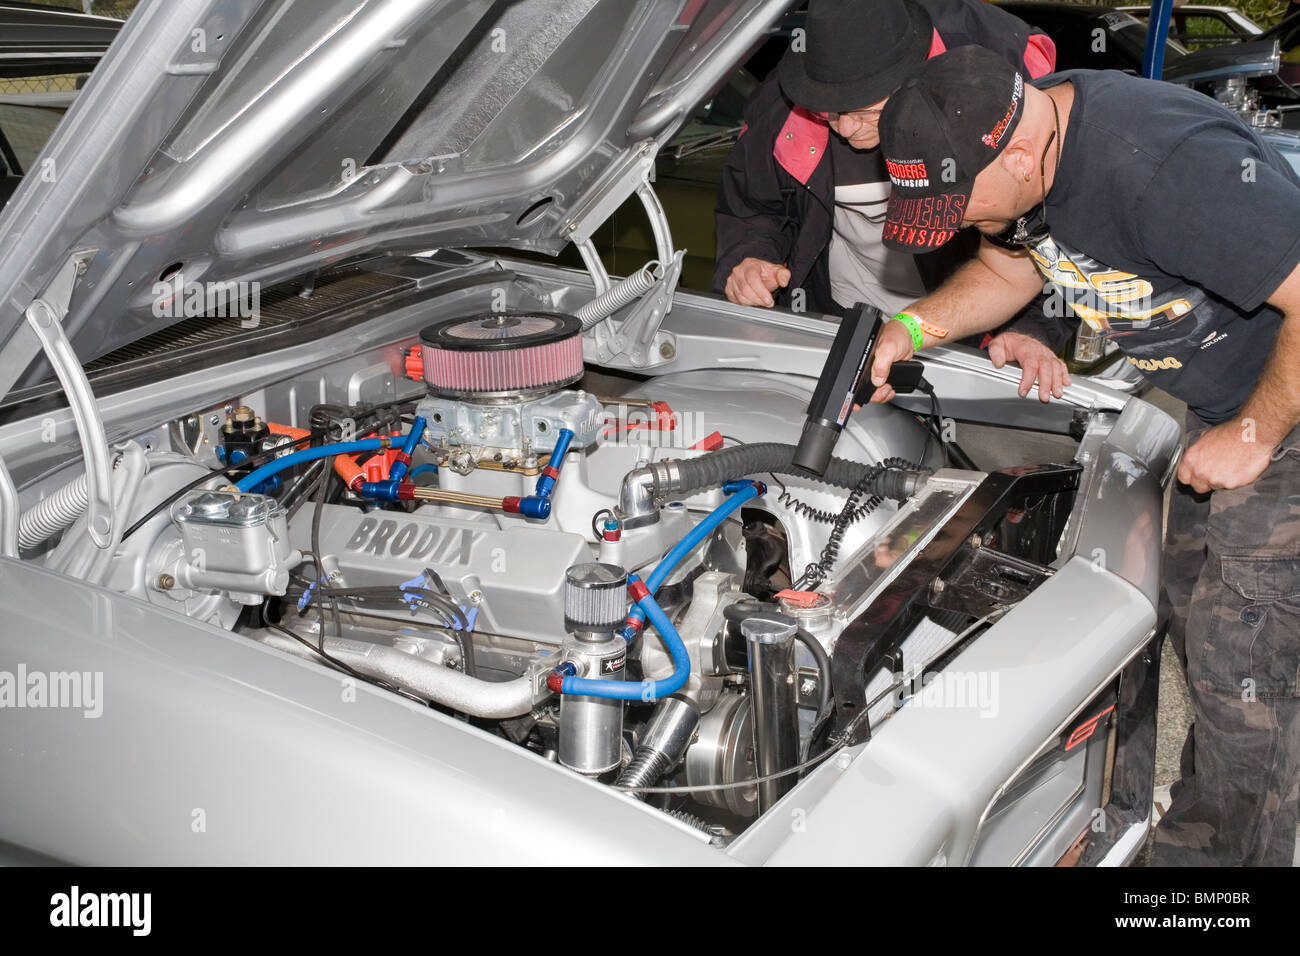 Engine Timing Stockfotos & Engine Timing Bilder - Alamy